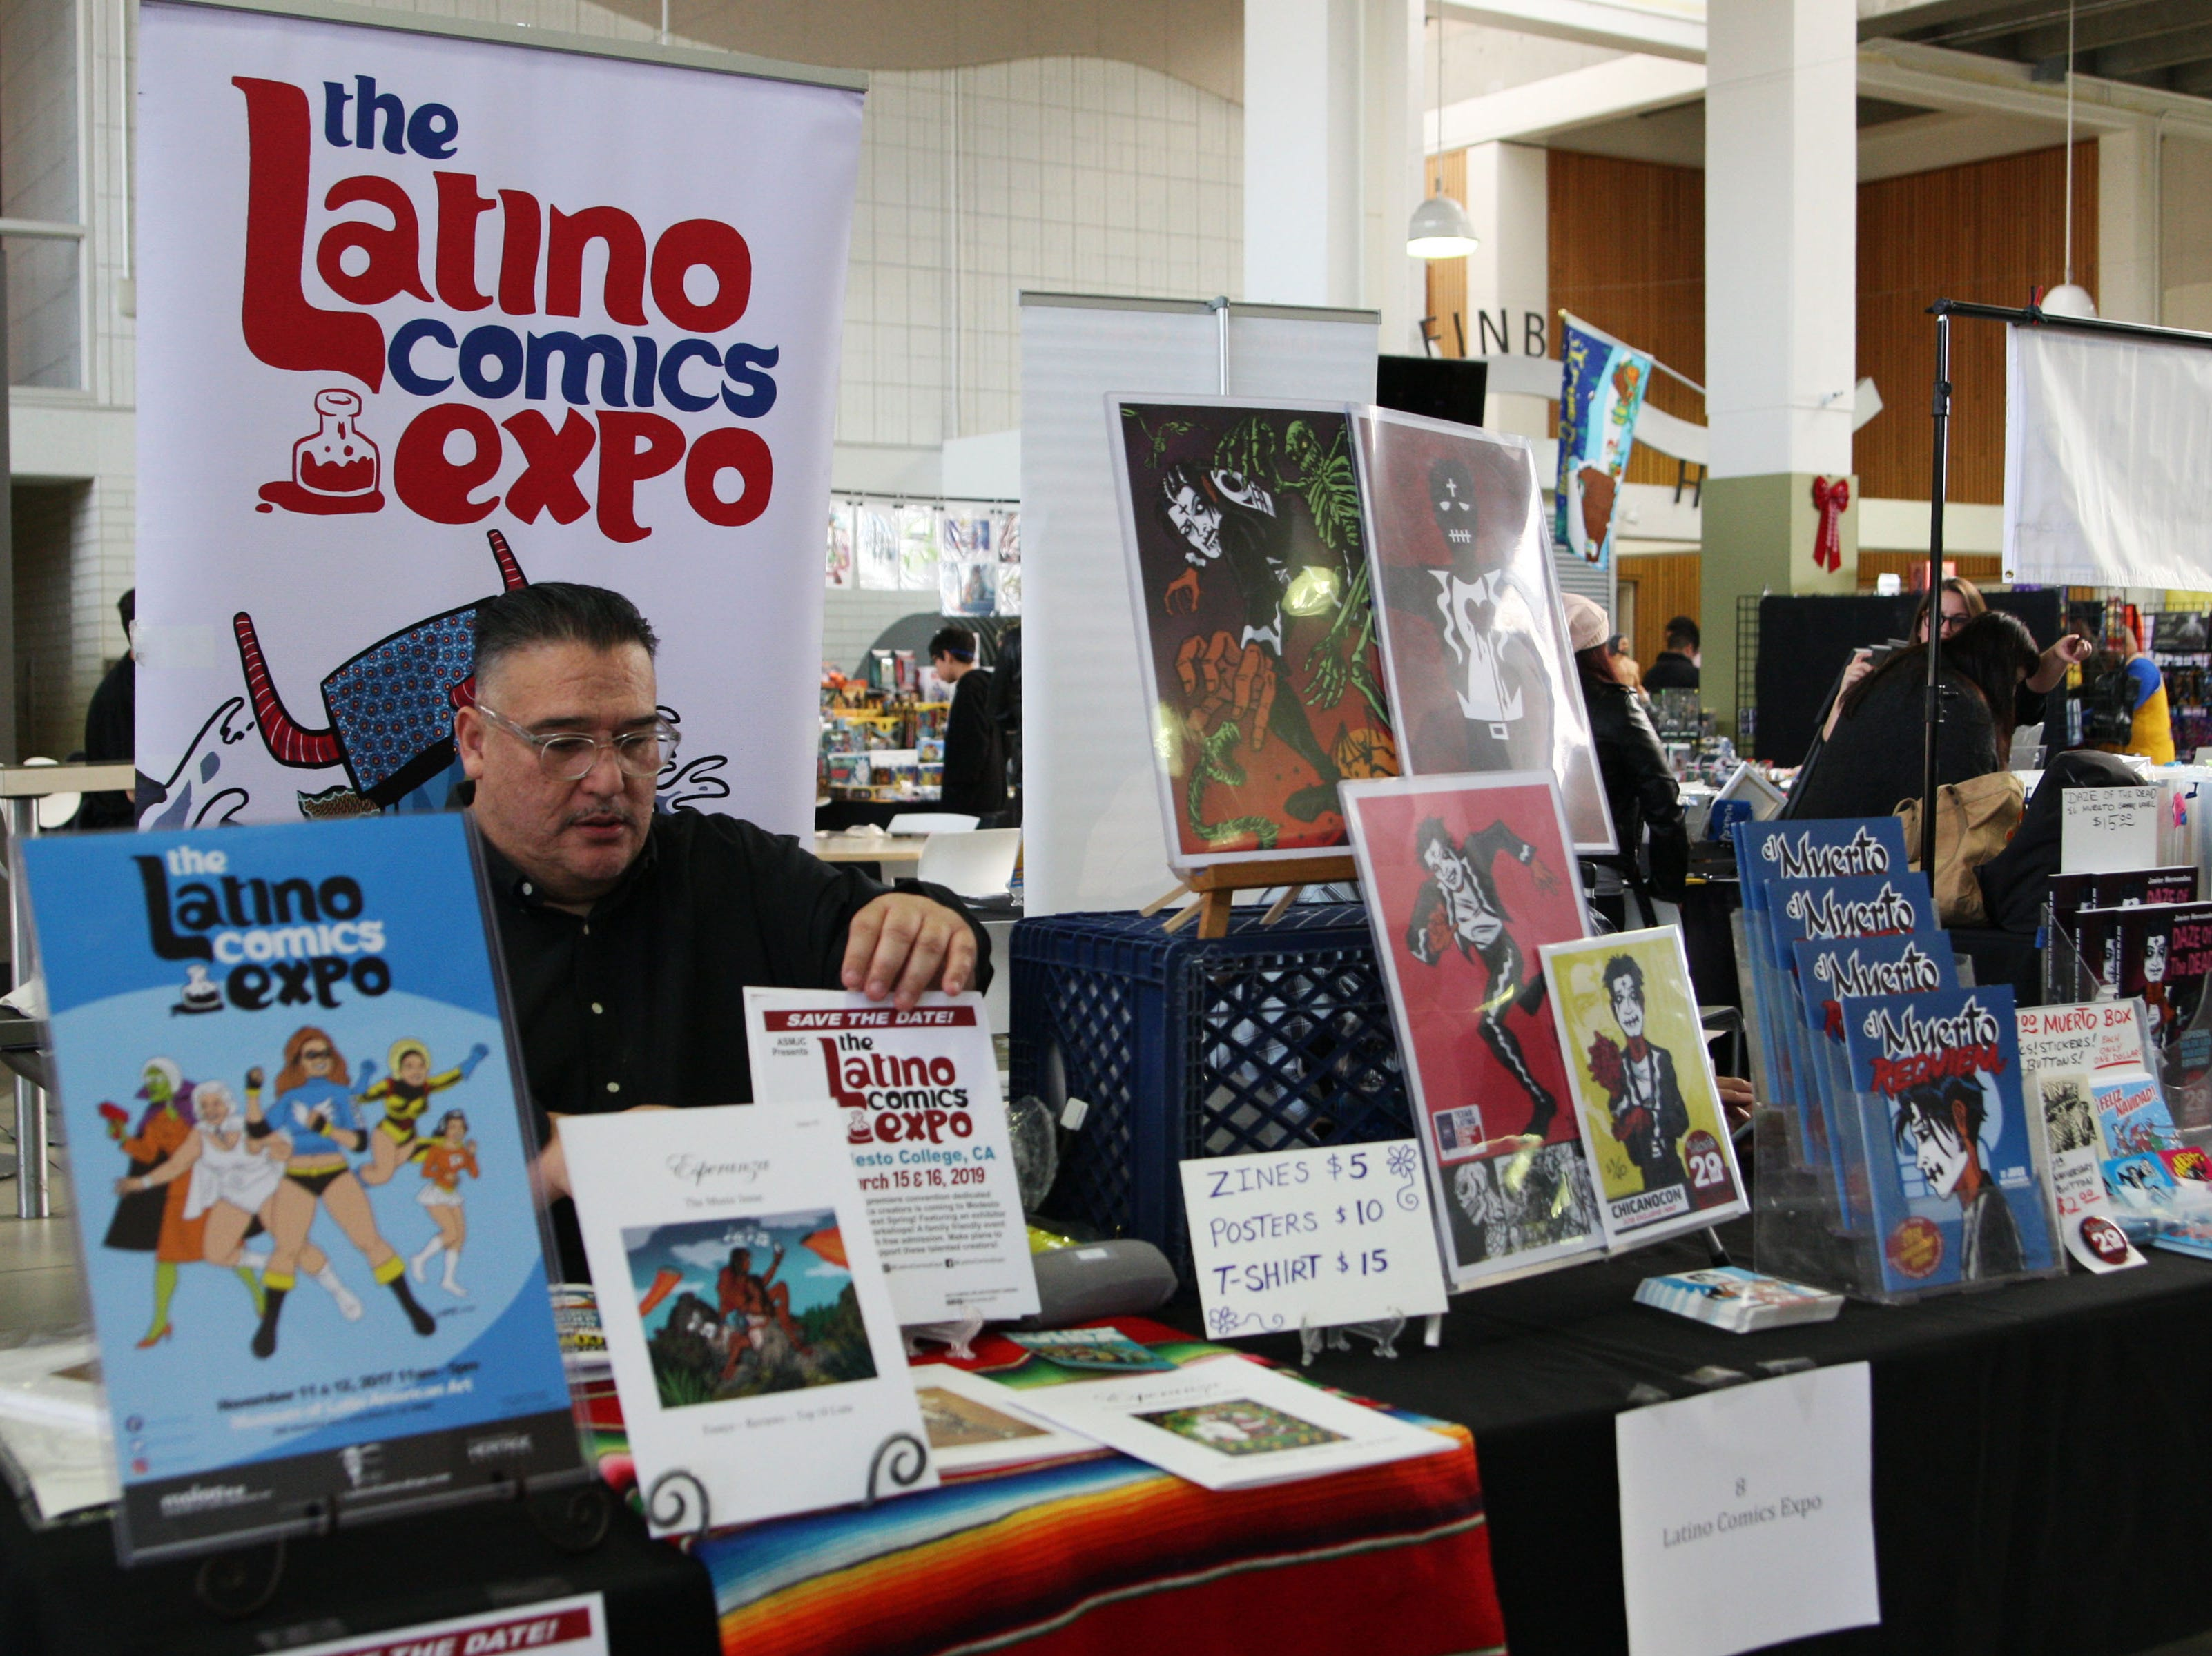 """Ricardo Padilla adjusts a sign advertising the next Latino Comics Expo. Padilla, a founder of the expo, said it is intended to showcase Latino artists and Latino-centric comics that give Latino children """"relatable content."""""""